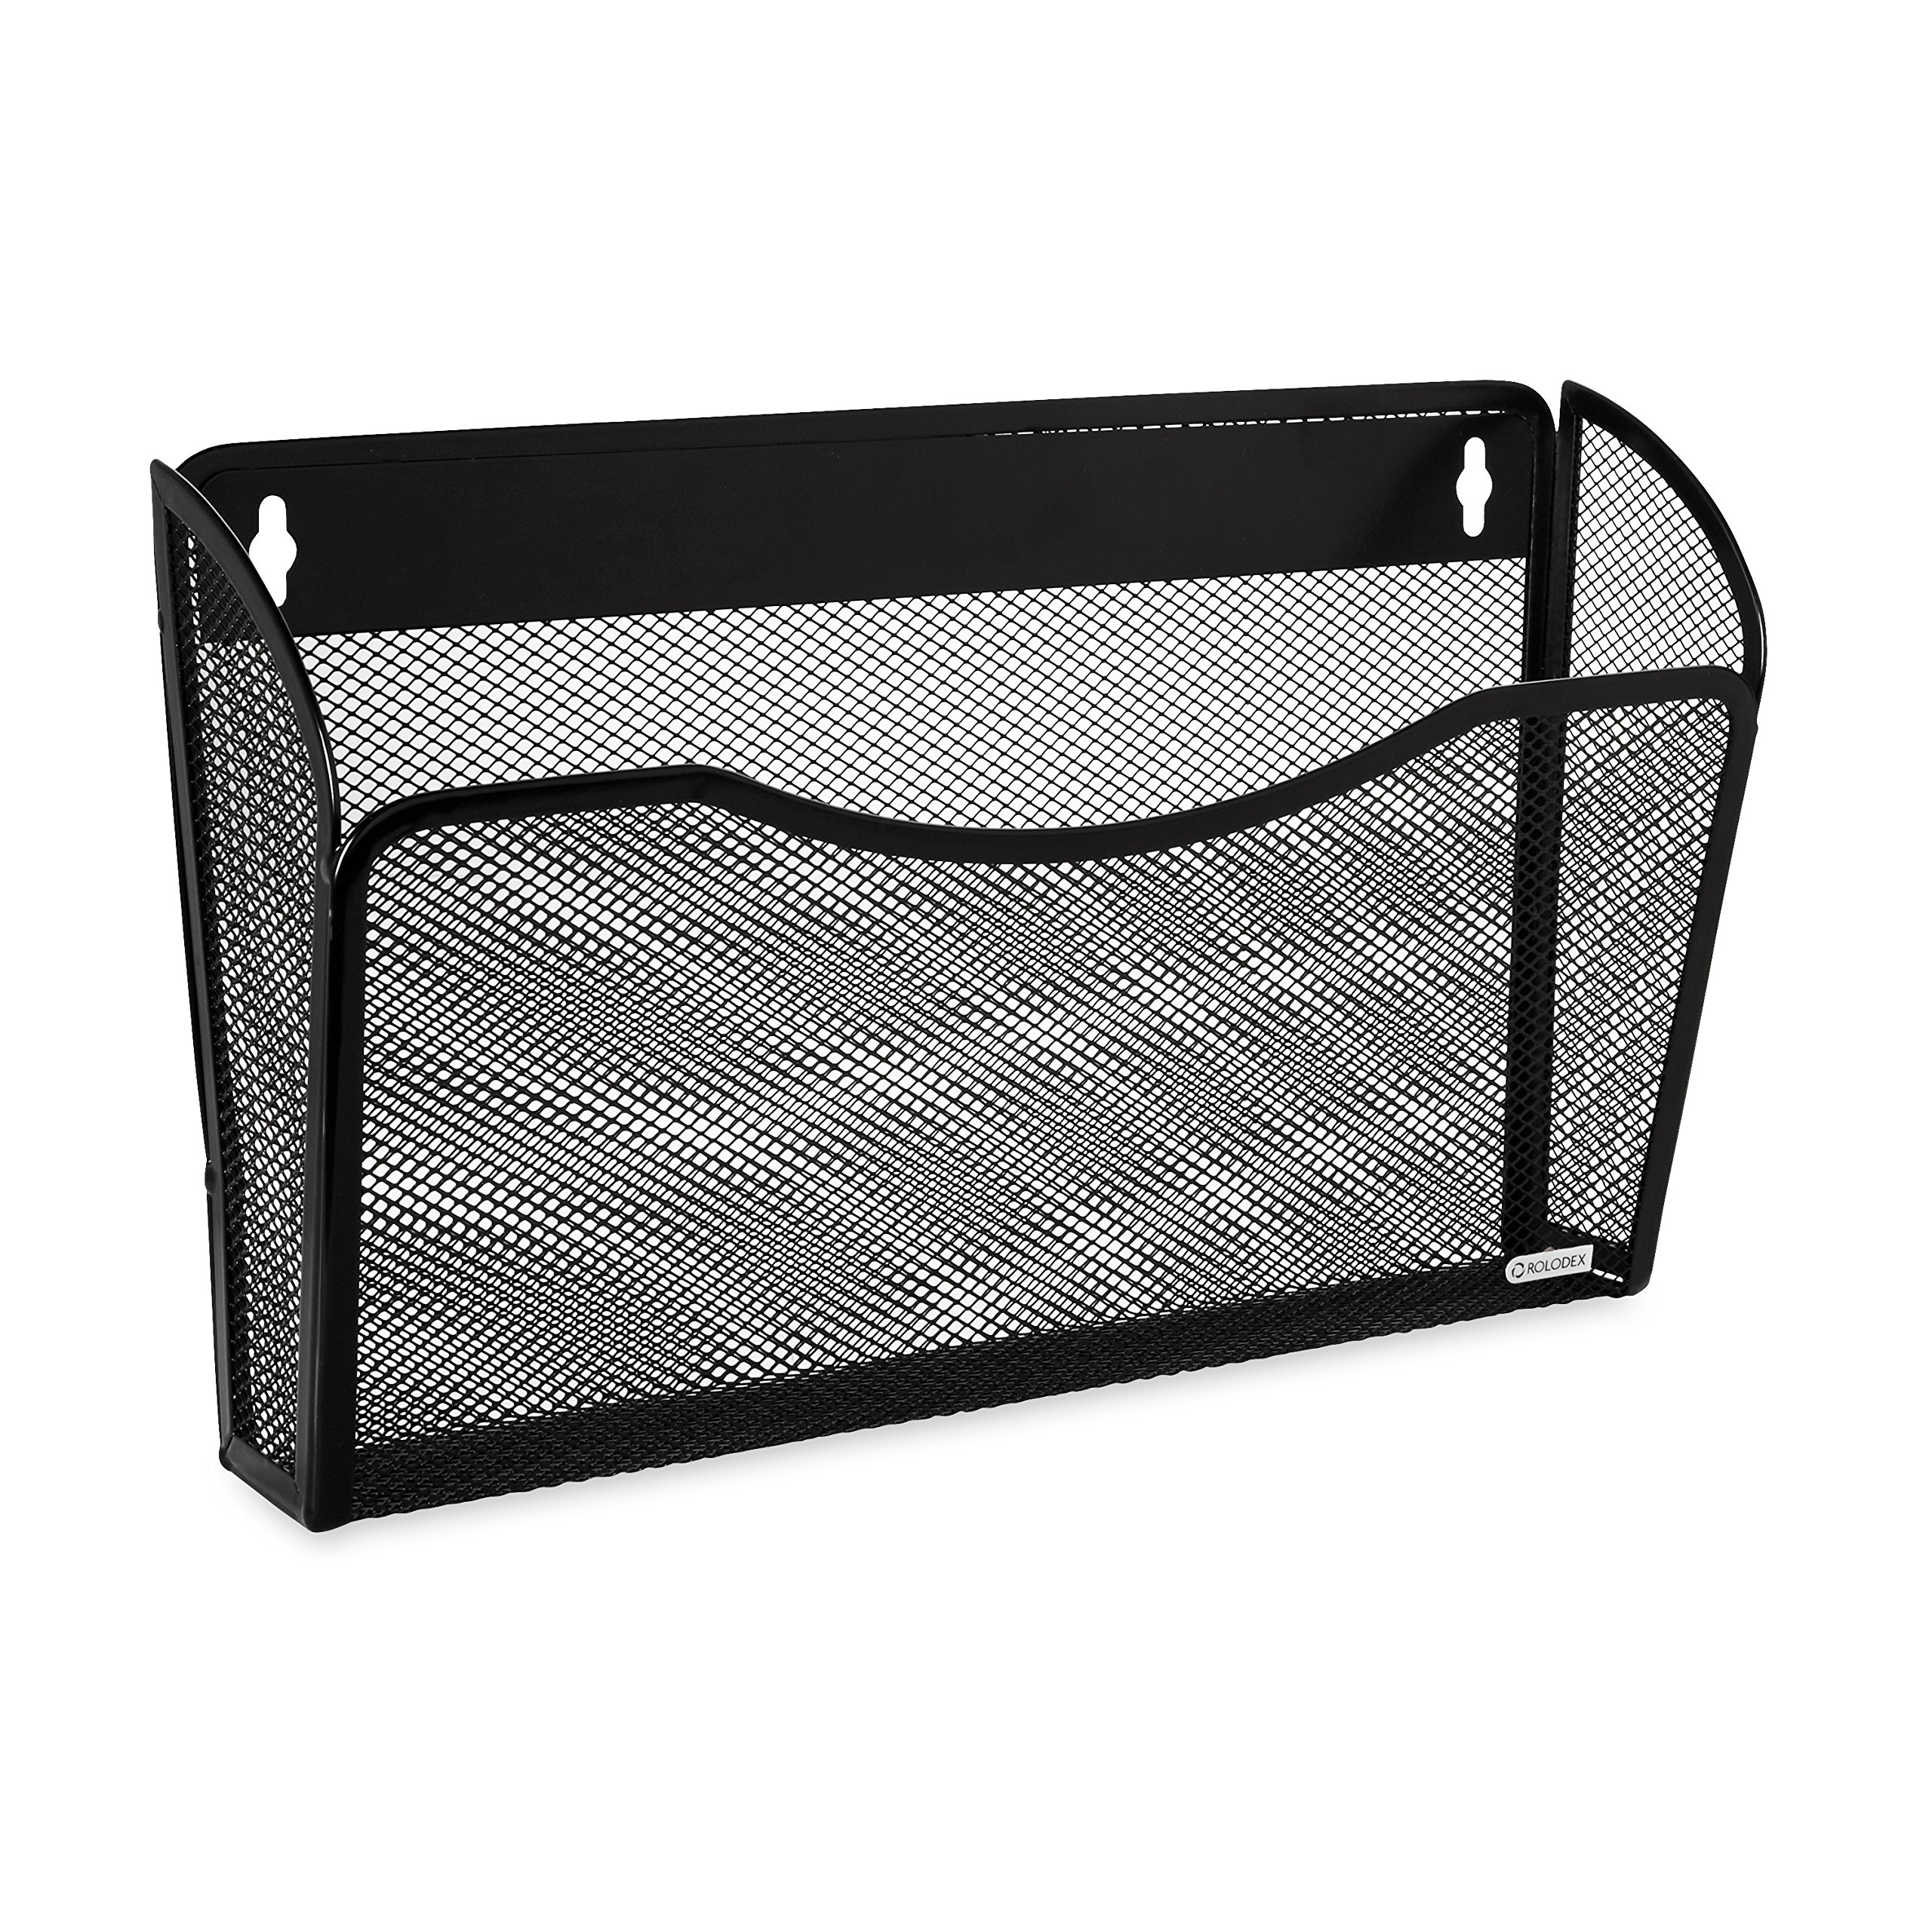 Rolodex Mesh Collection Single-Pocket Wall File, Black (21931) by Rolodex